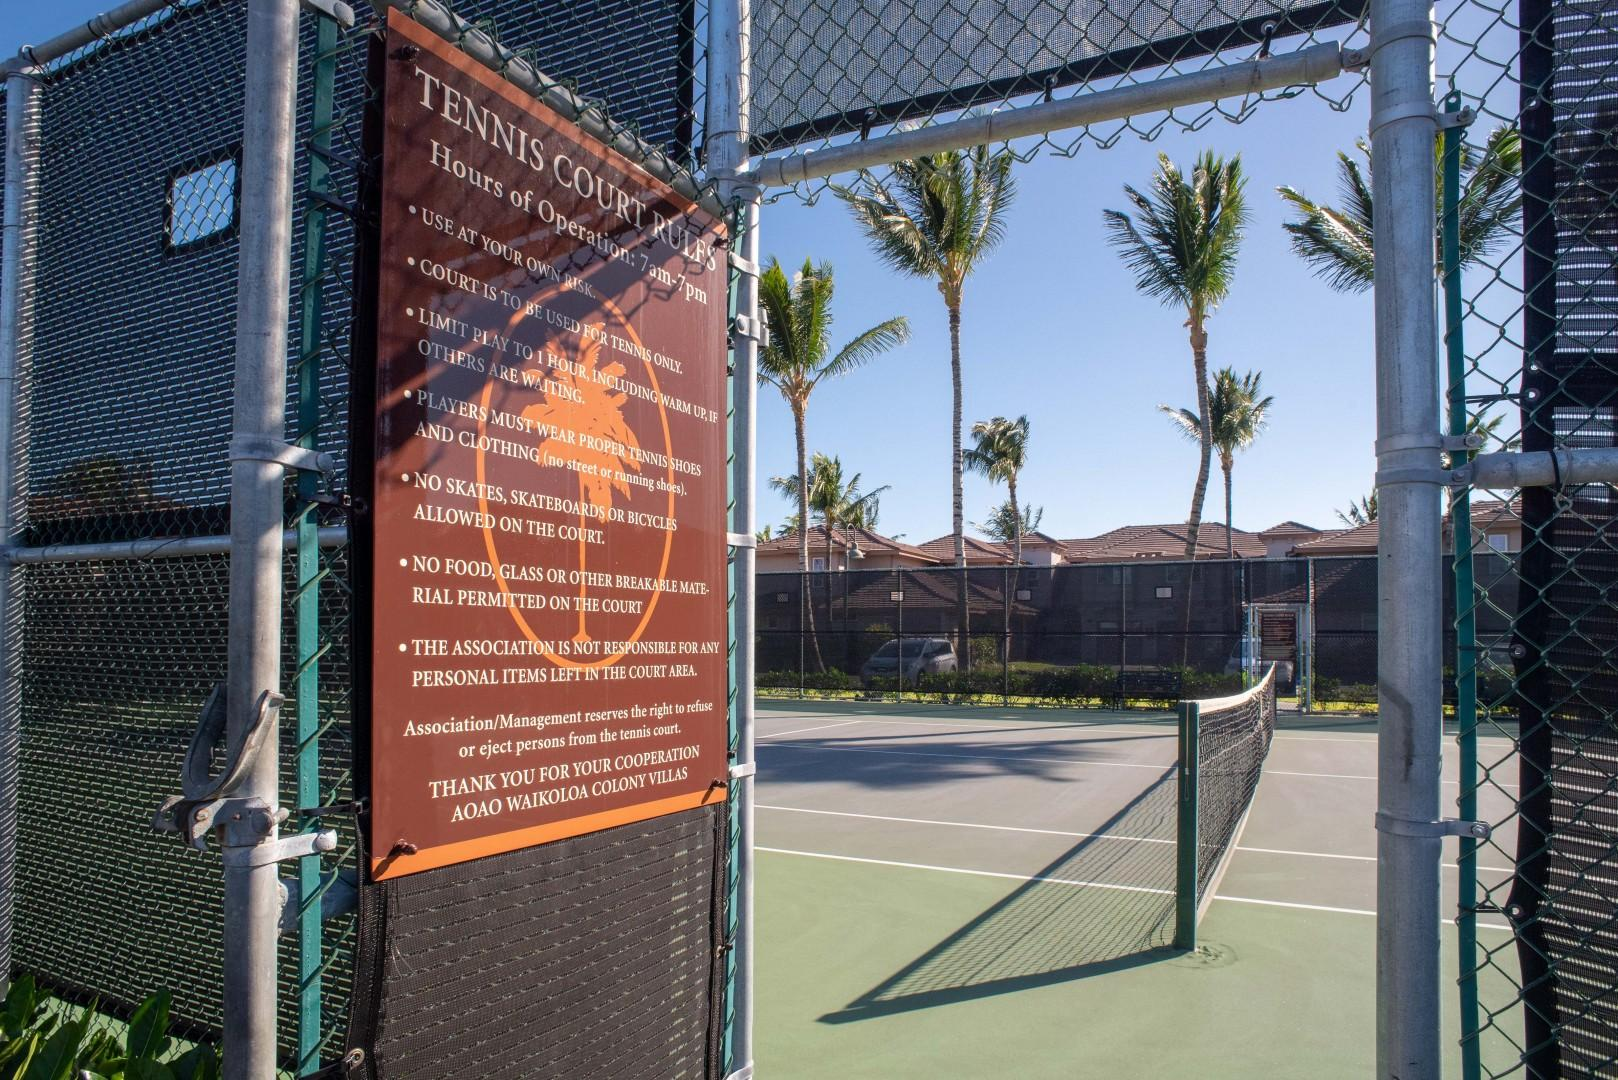 Guests Enjoy Free Access to Tennis Court